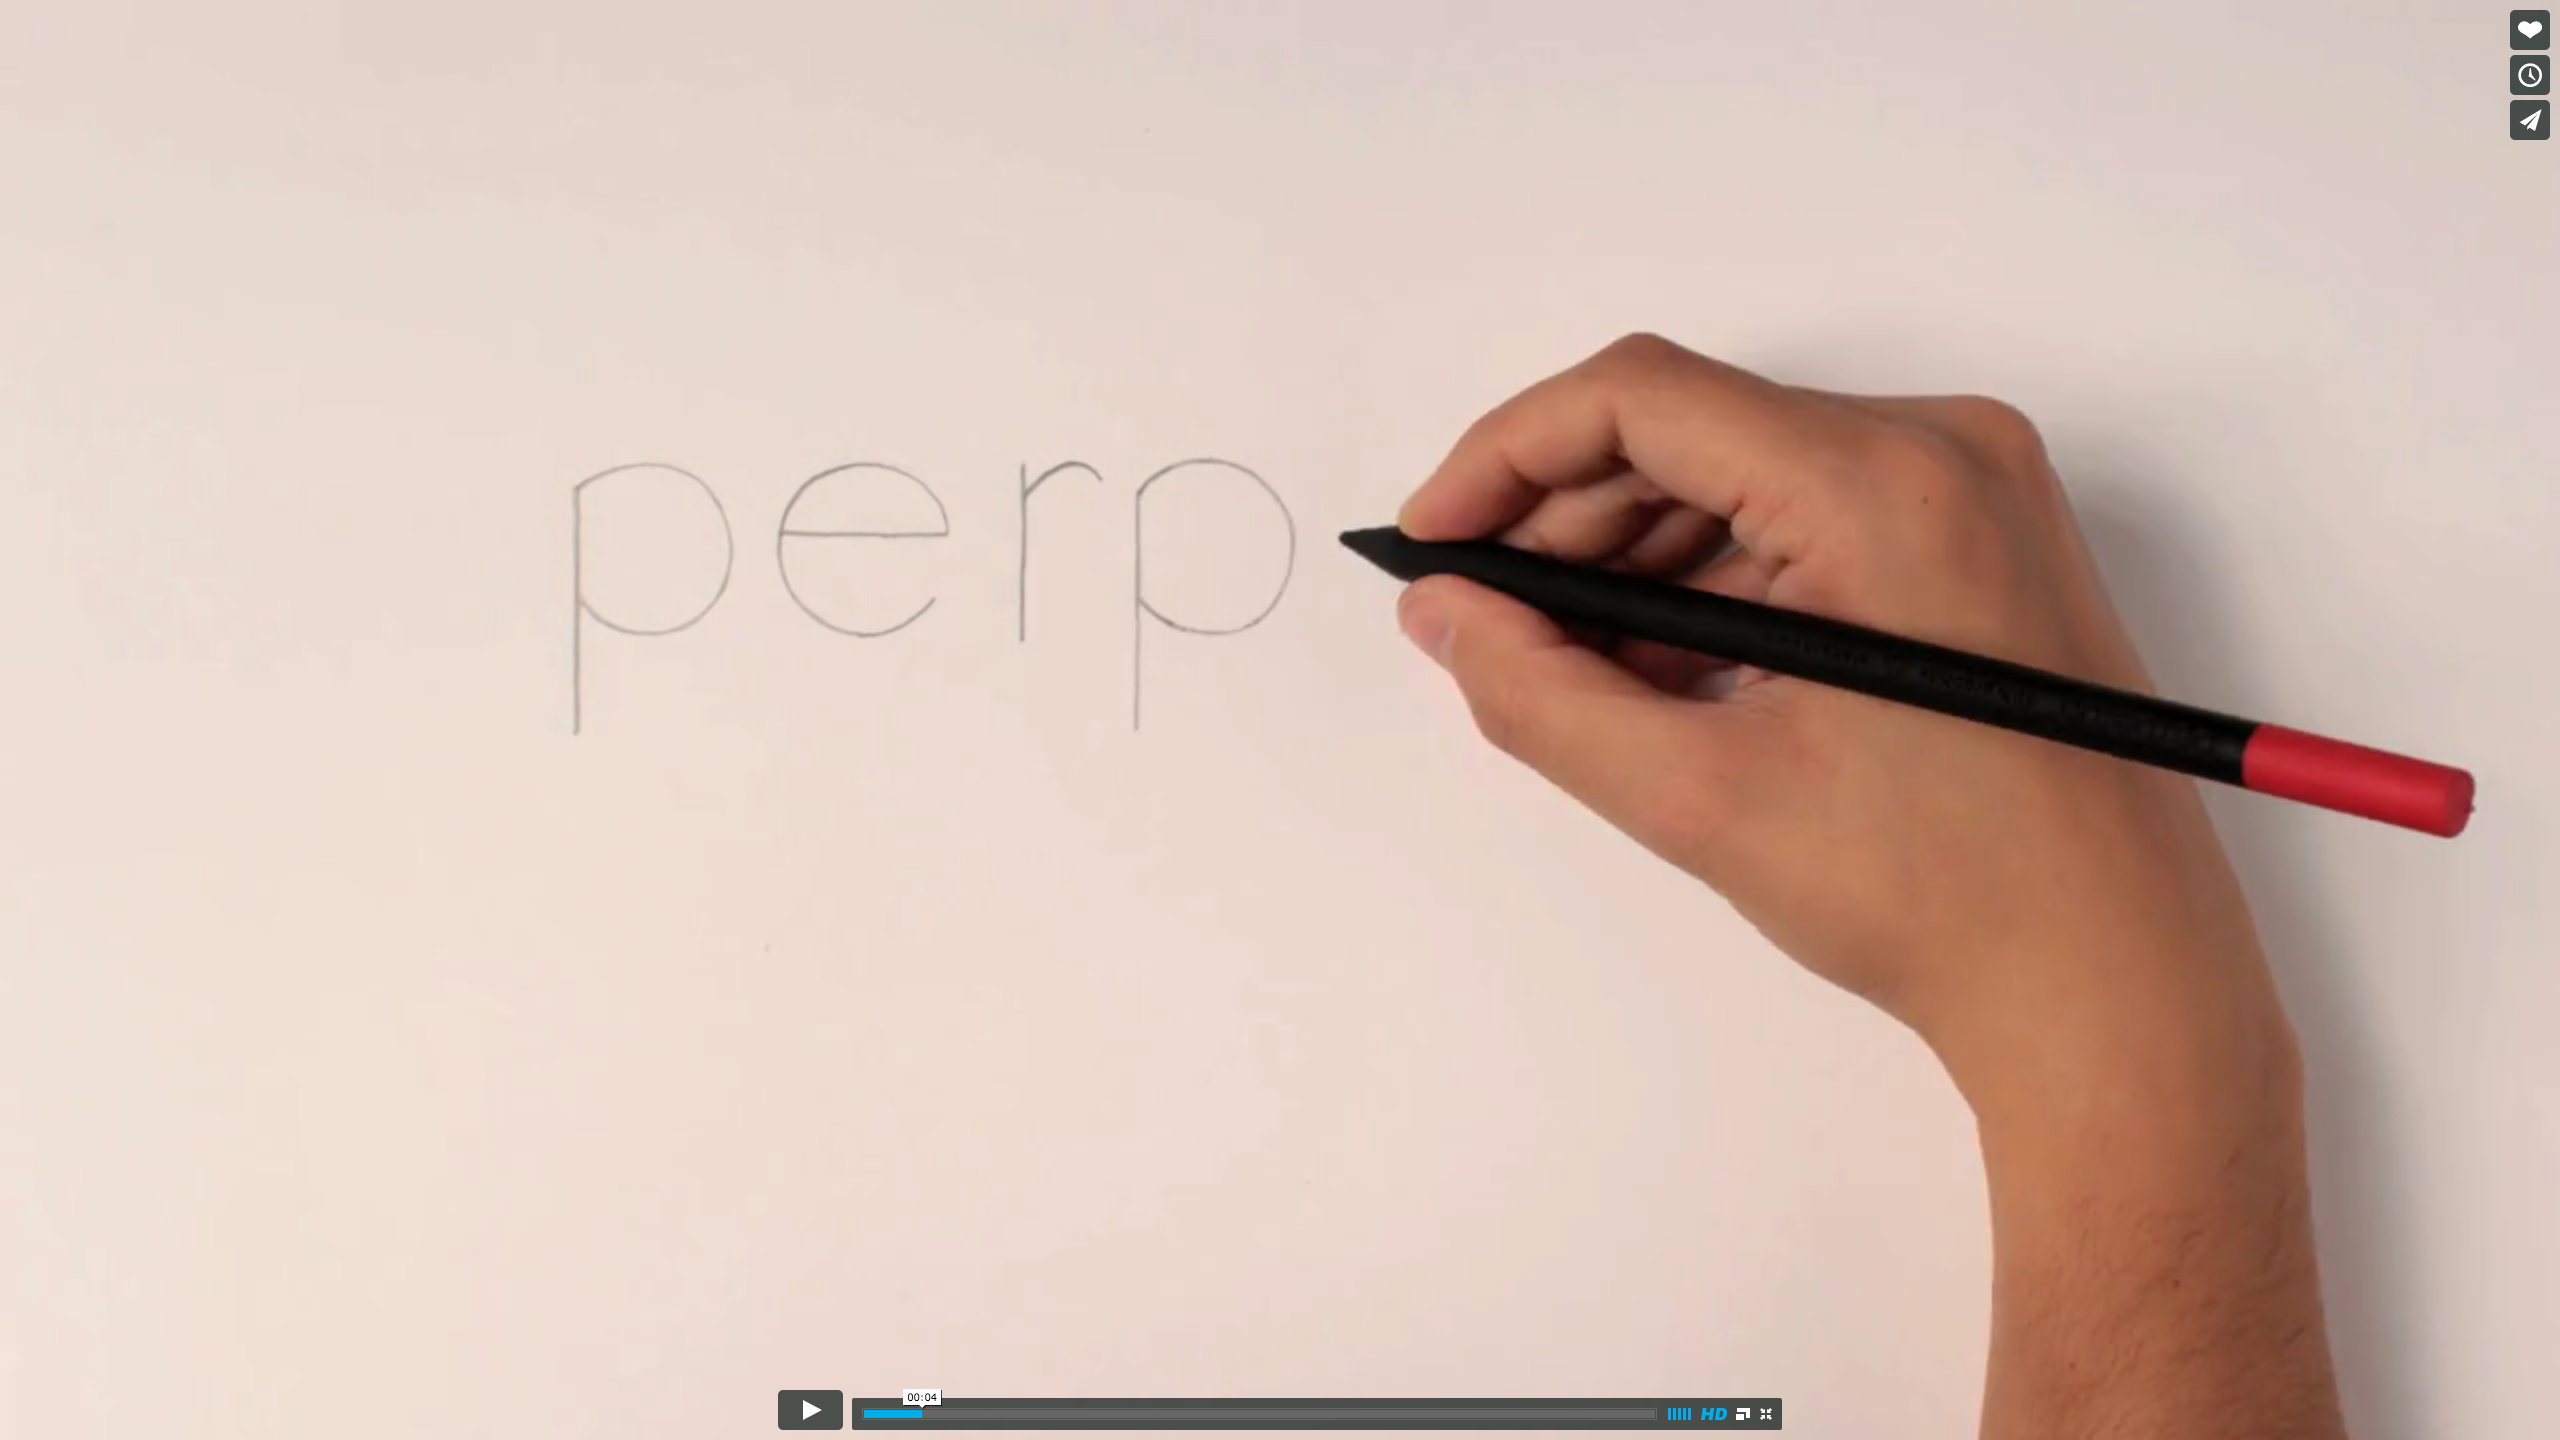 Perpetua, the pencil Viral Web Video